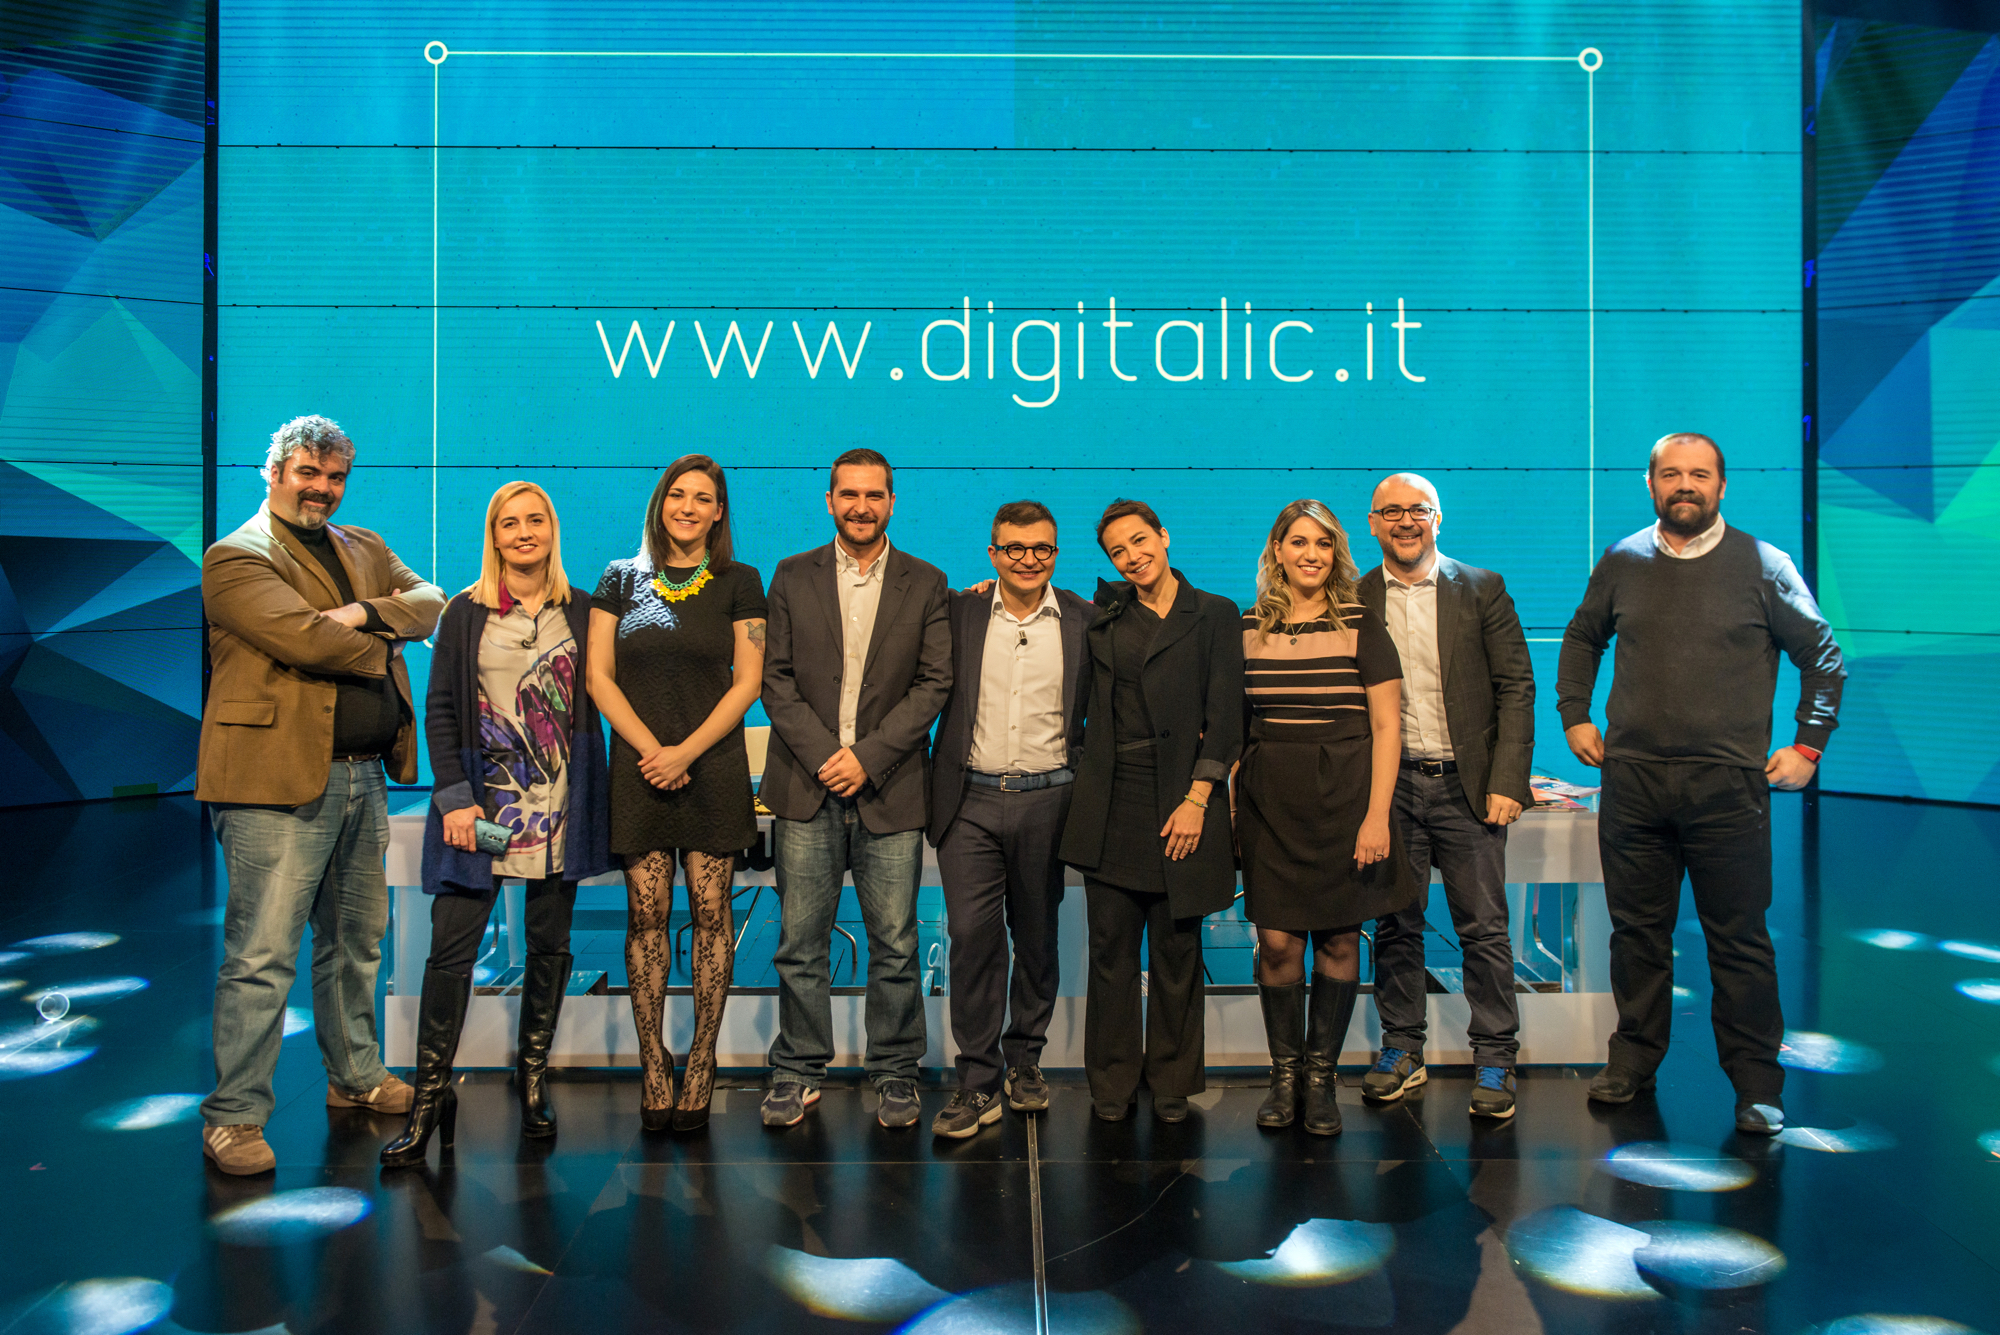 Digitalic X #DigitalicX Ospiti